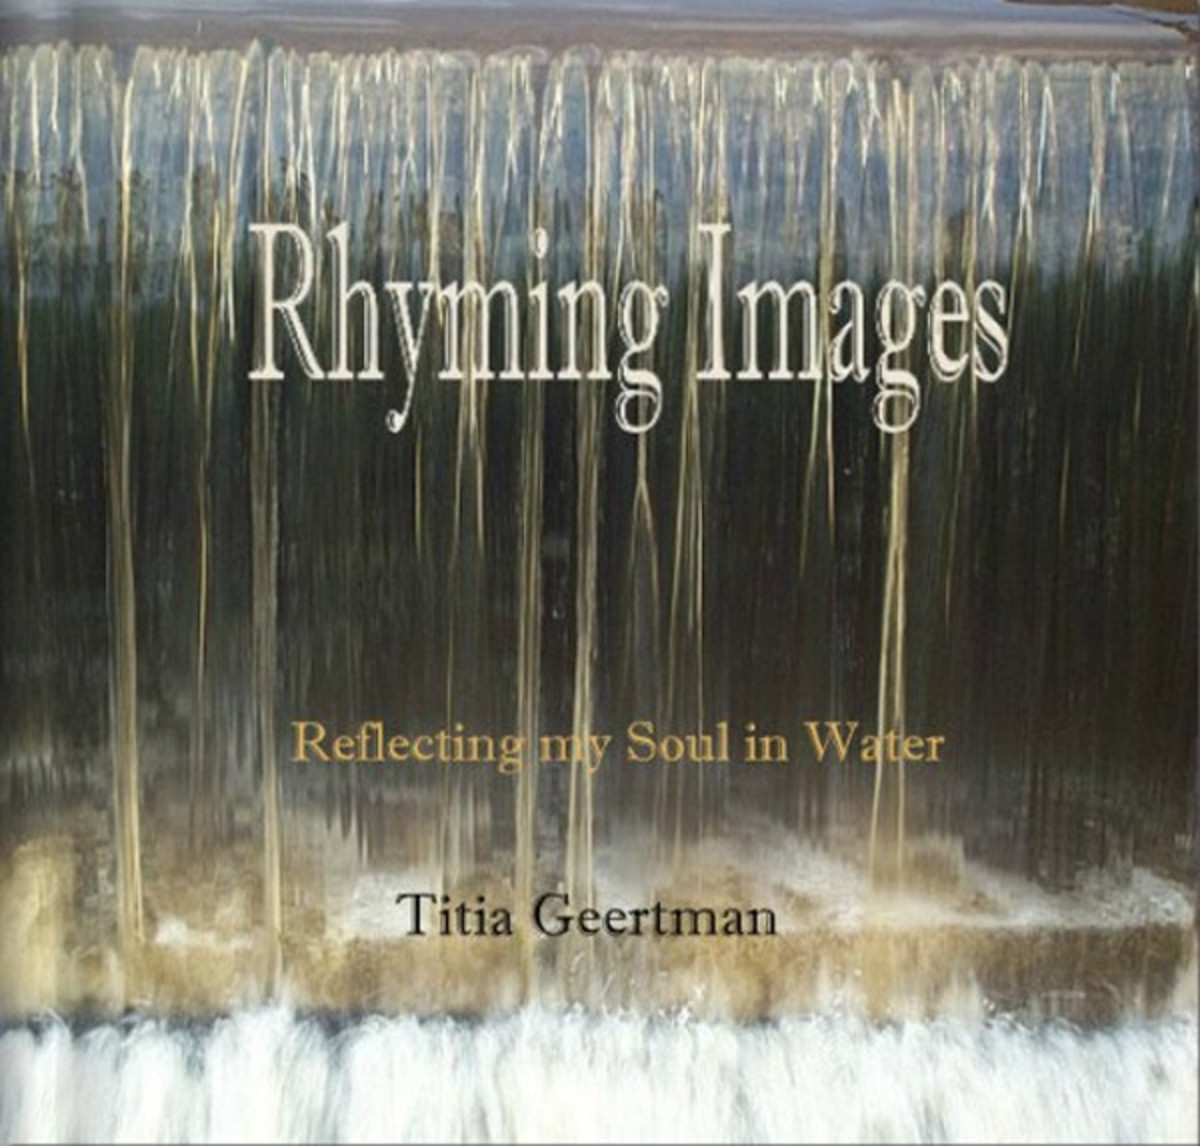 Poetry and Photography - Reflecting my soul in water